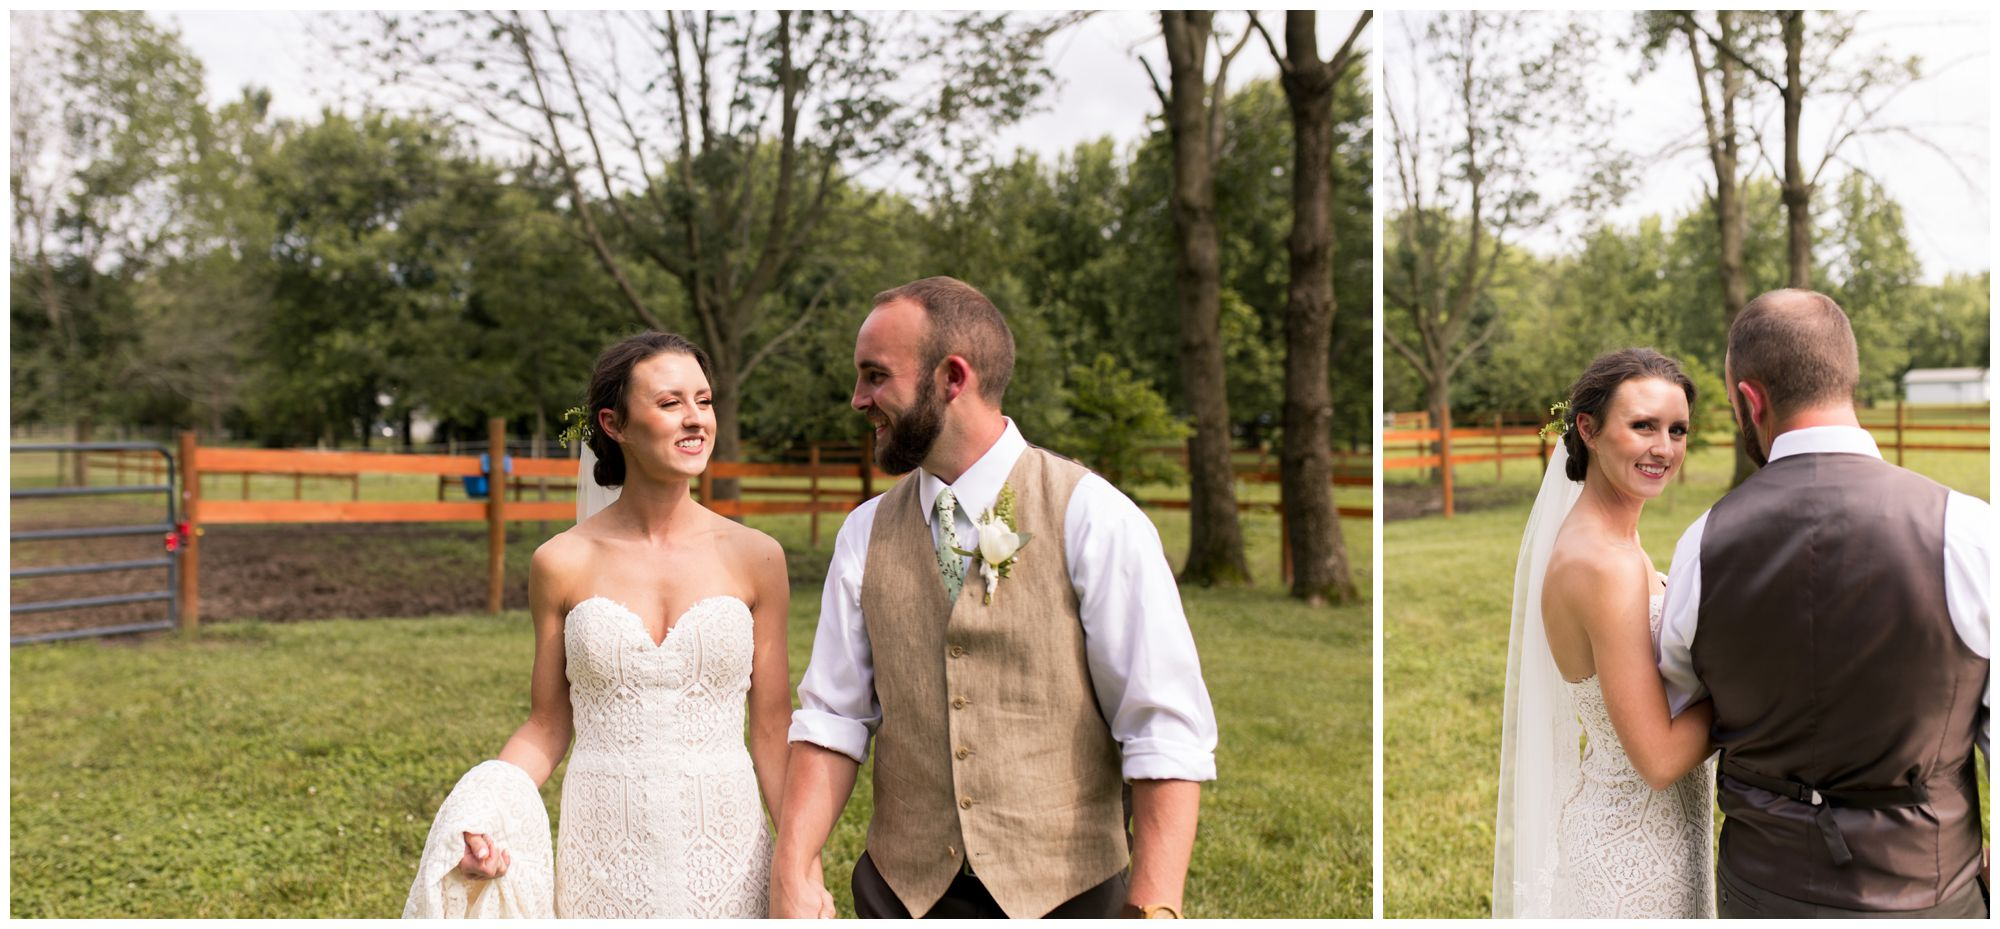 bride and groom walk through horse pasture during couples portraits at Indianapolis wedding